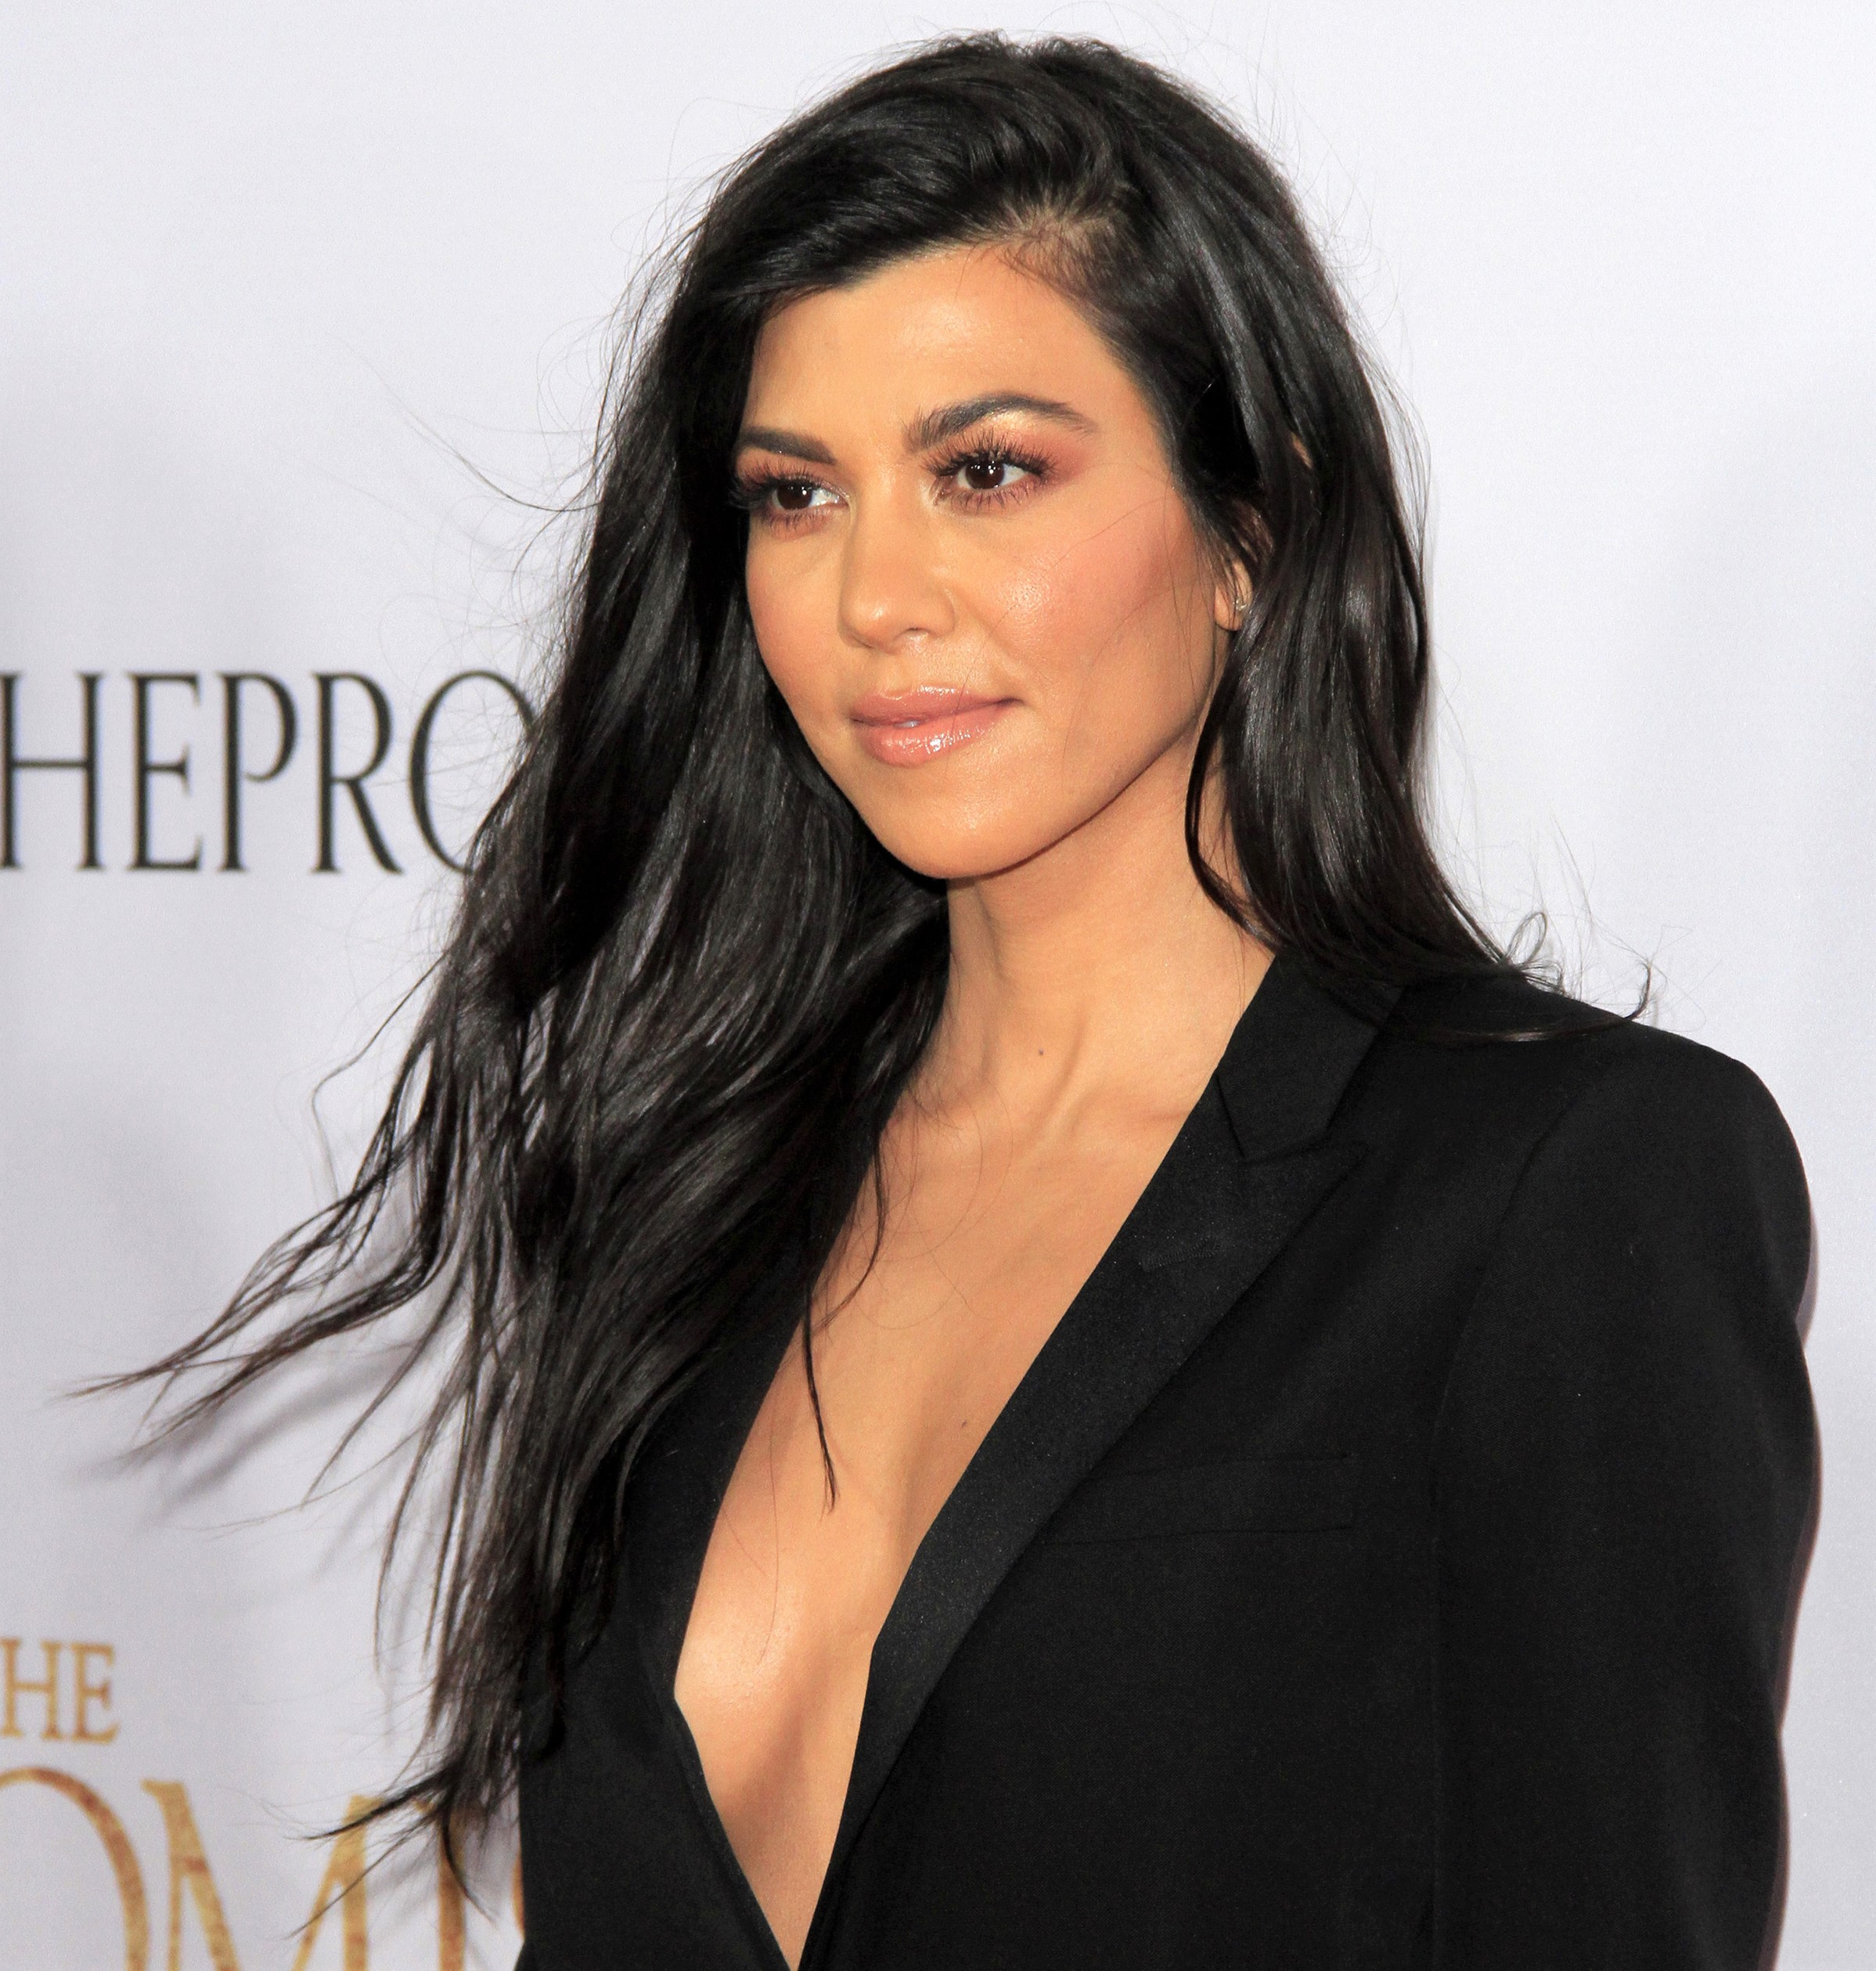 Kourtney Kardashian Flowy Hair Black Deep V Suit